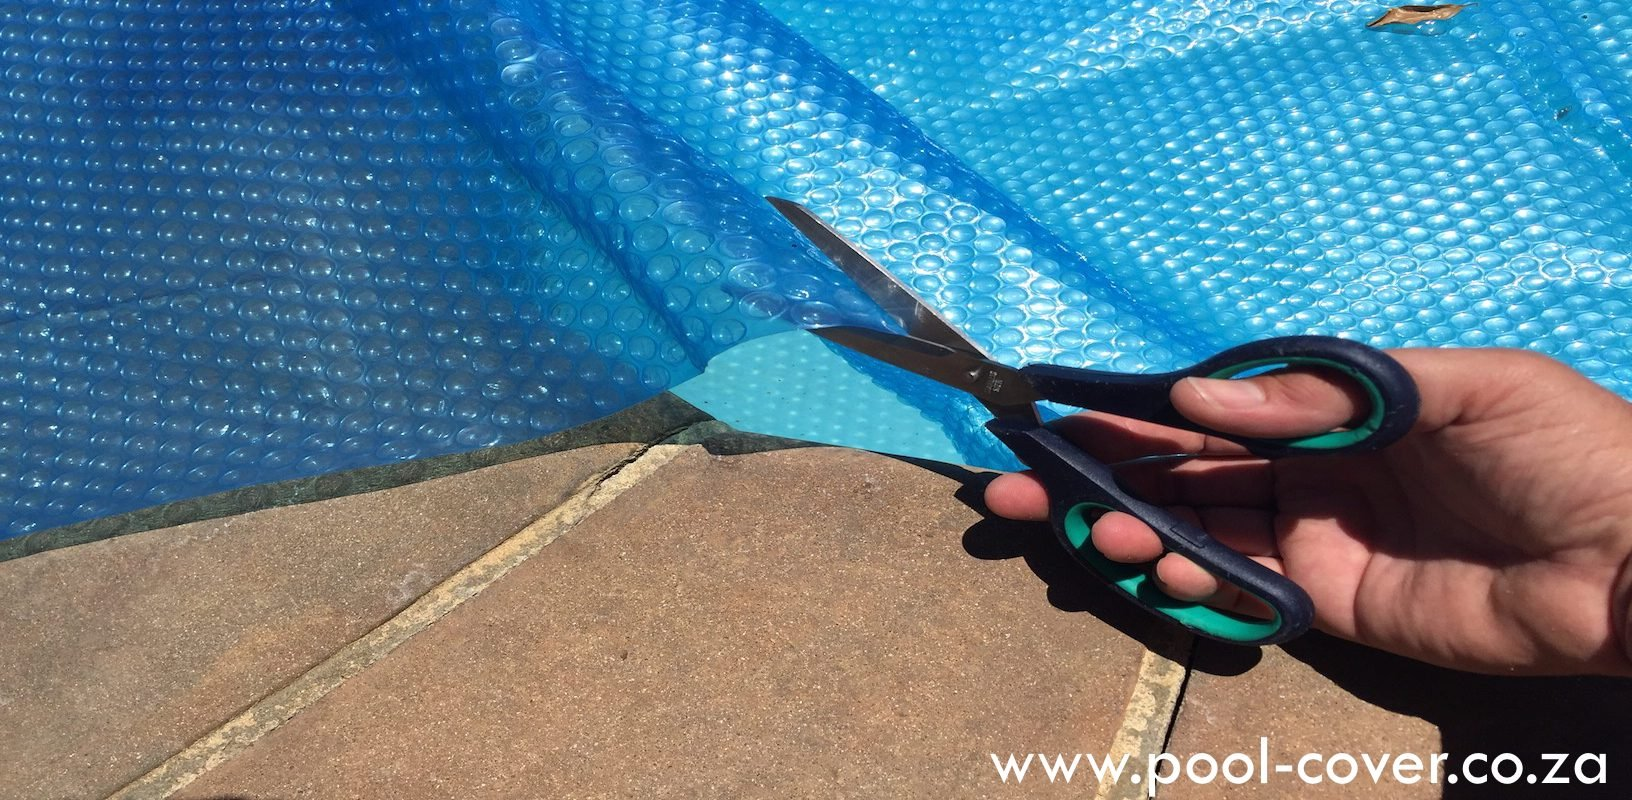 trimming-and-cutting-bubble-wrap-pool-cover-1